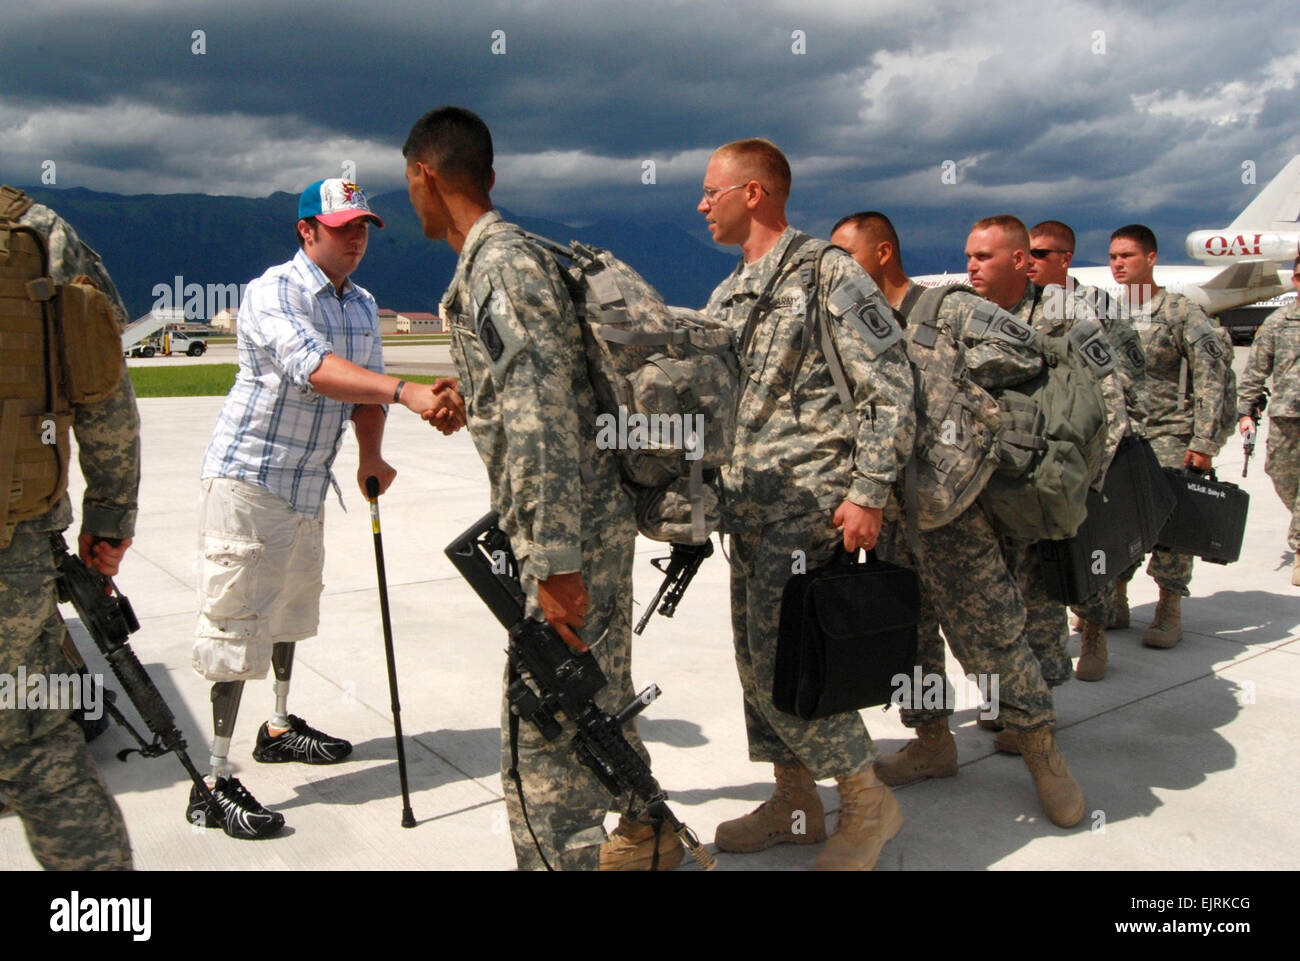 Spc. Jesse A. Murphree, Destined Company, 2nd Battalion, 503rd Infantry Regiment Airborne, greets his 173rd Airborne - Stock Image